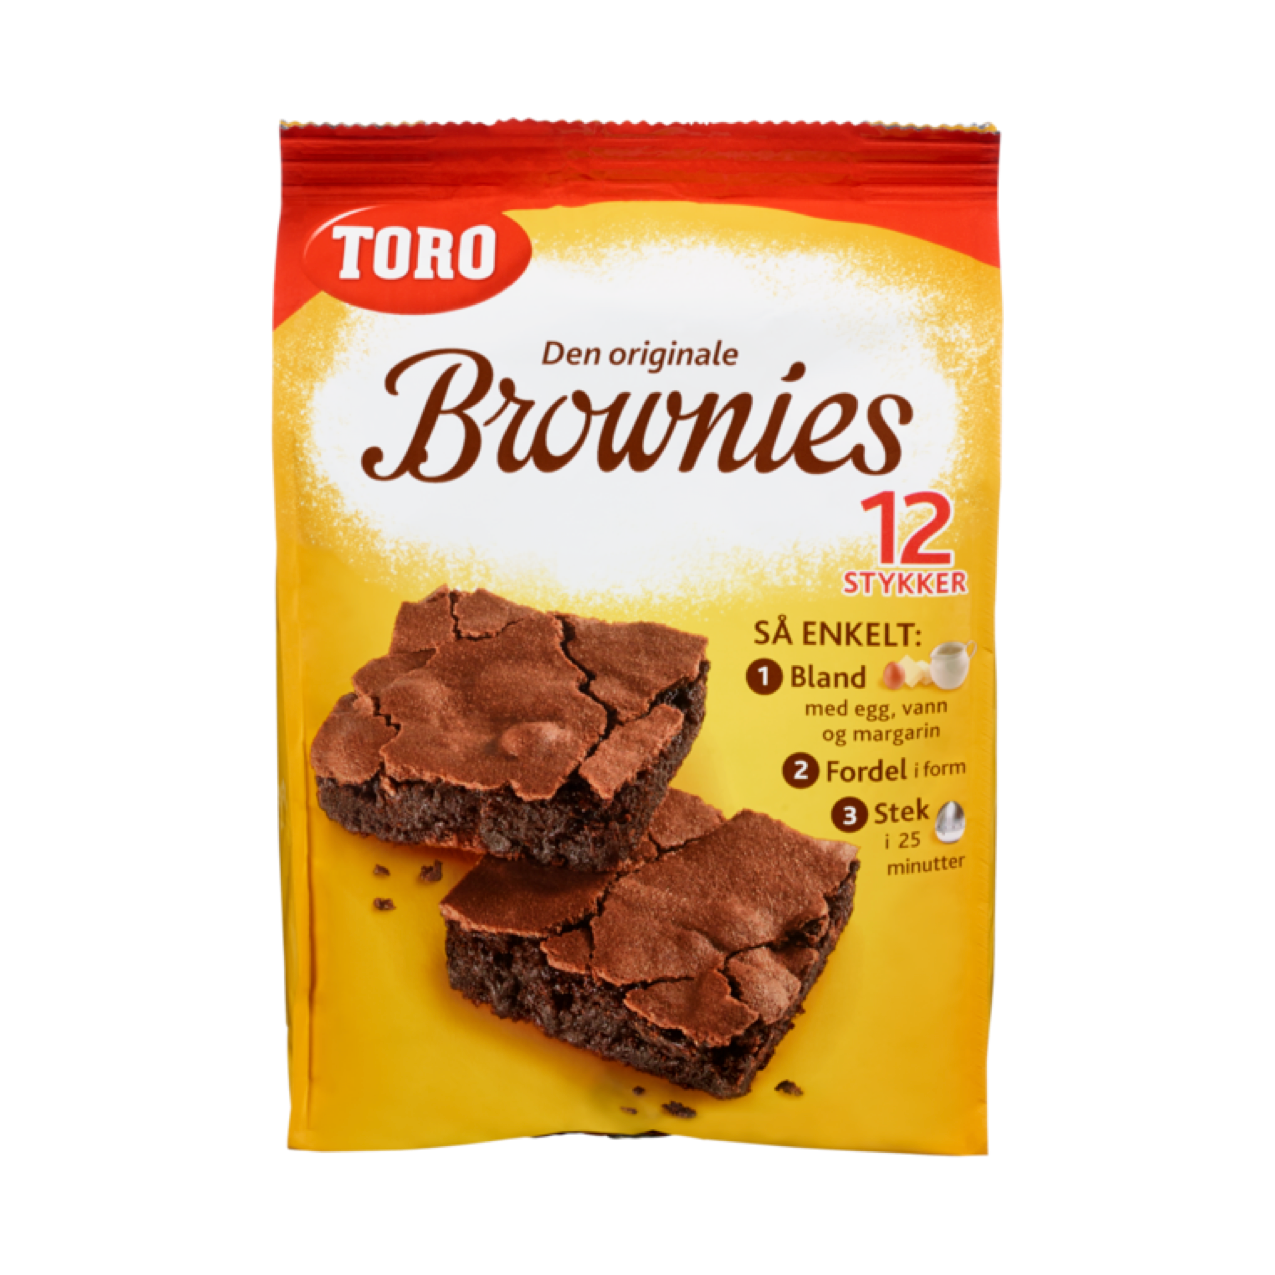 Brownies (Mix) by Toro